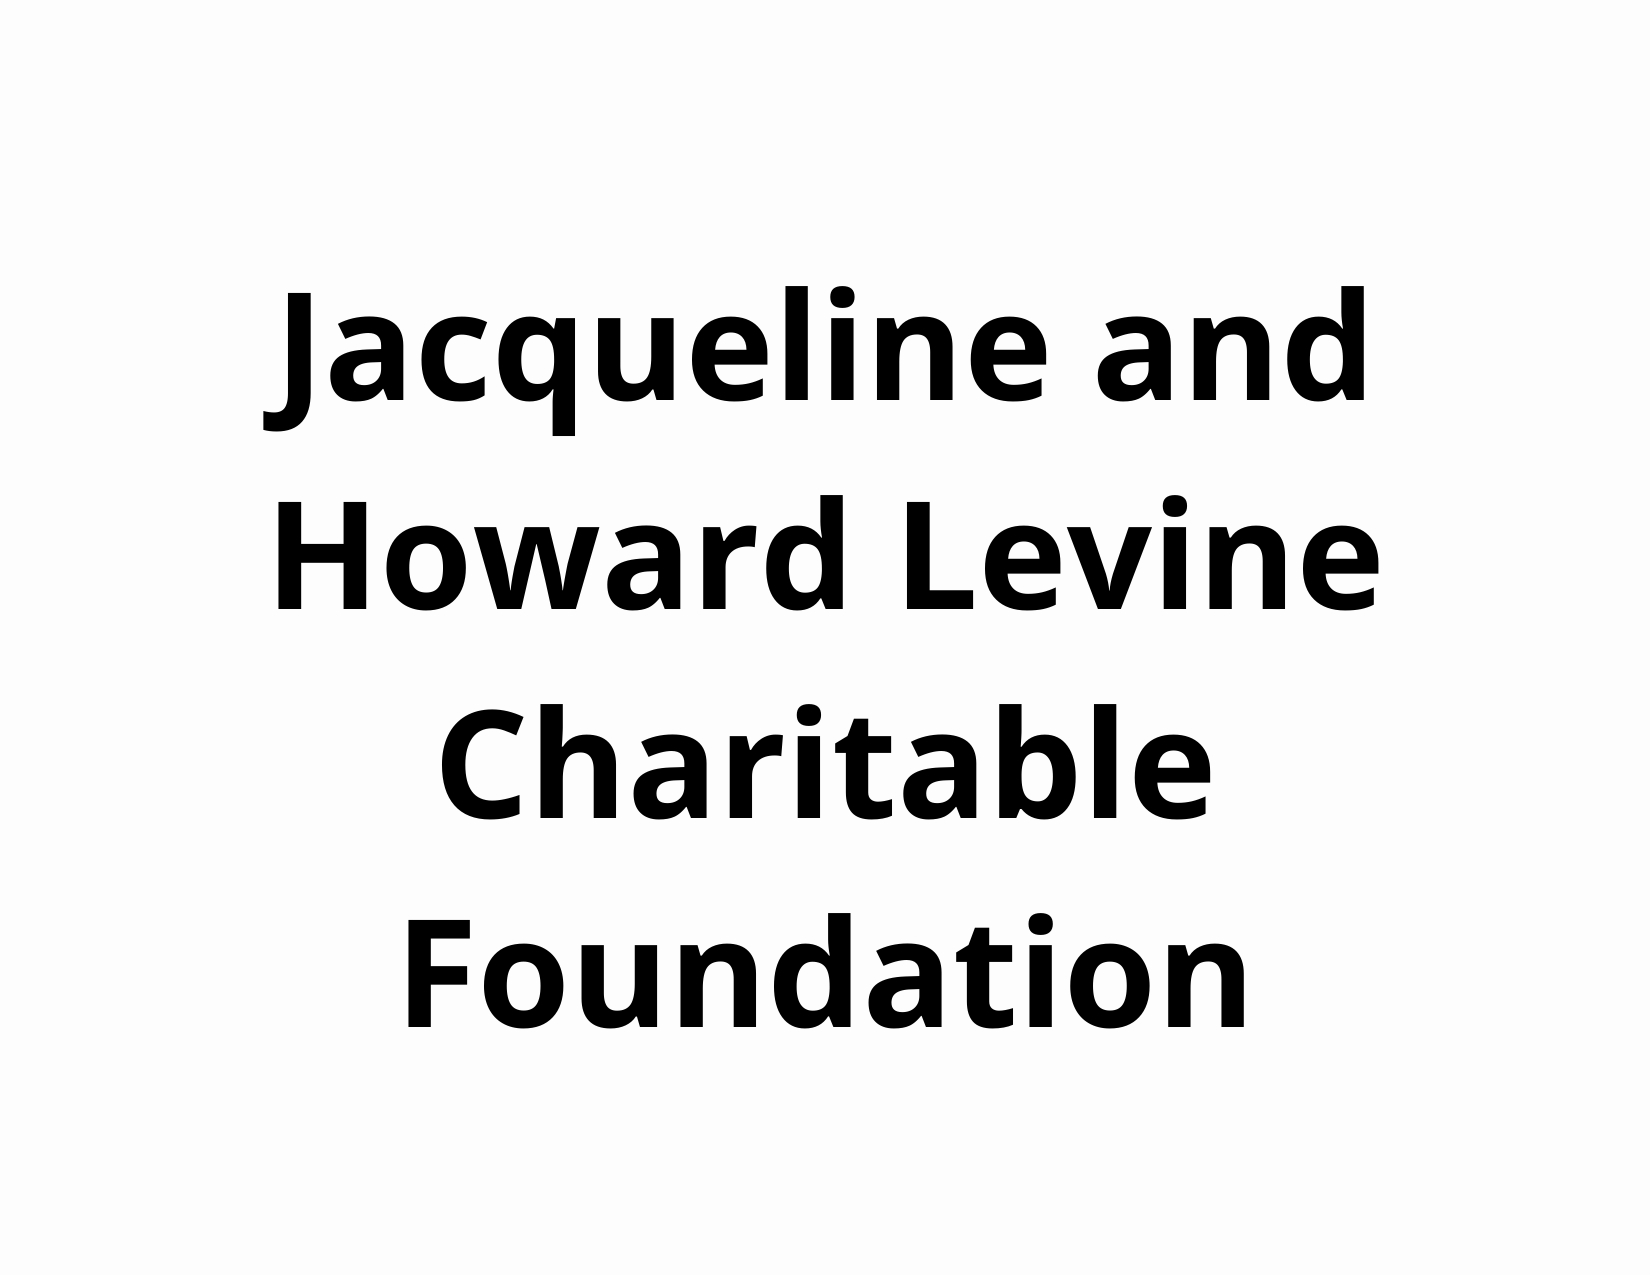 Jacqueline and Howard Levine Charitable Foundation